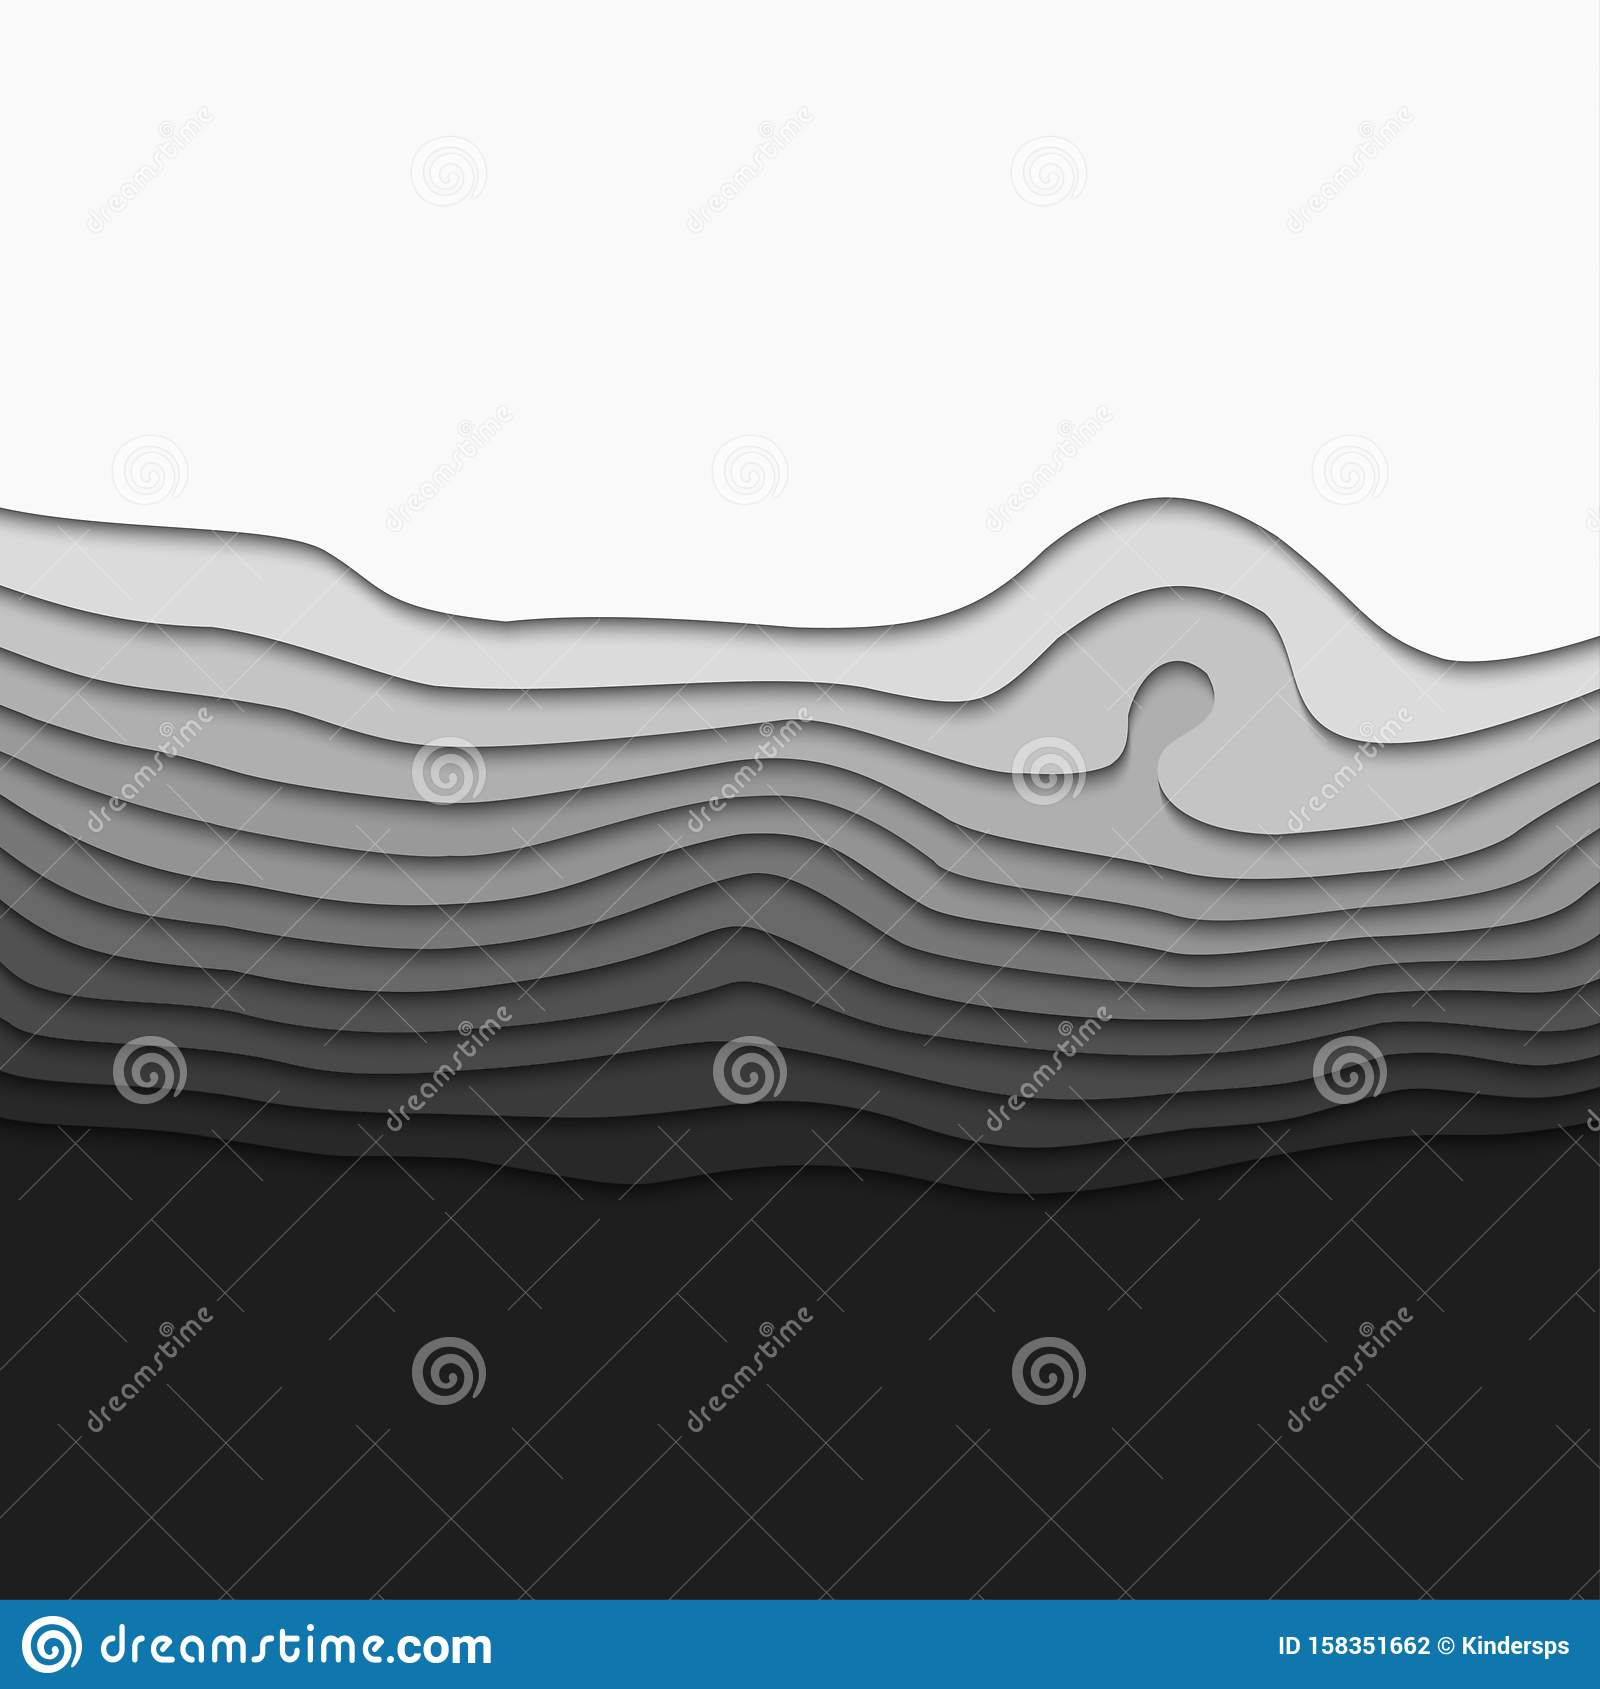 3D Topography map. Abstract background of gradient. Art background design. Horizontal smooth origami shape paper